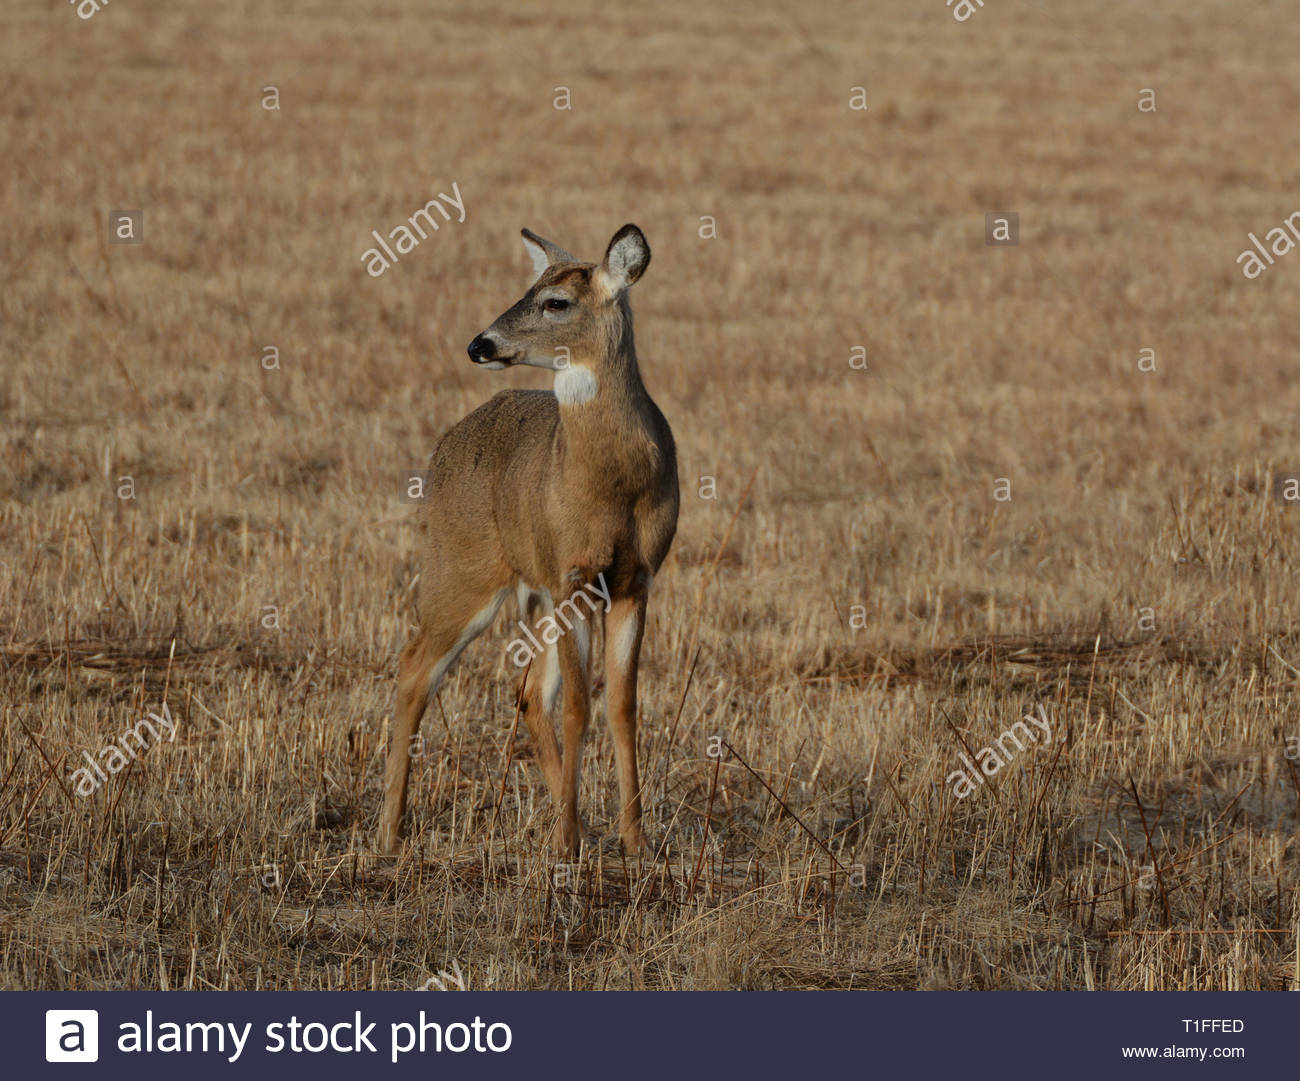 White Tailed Deer - Stock Image